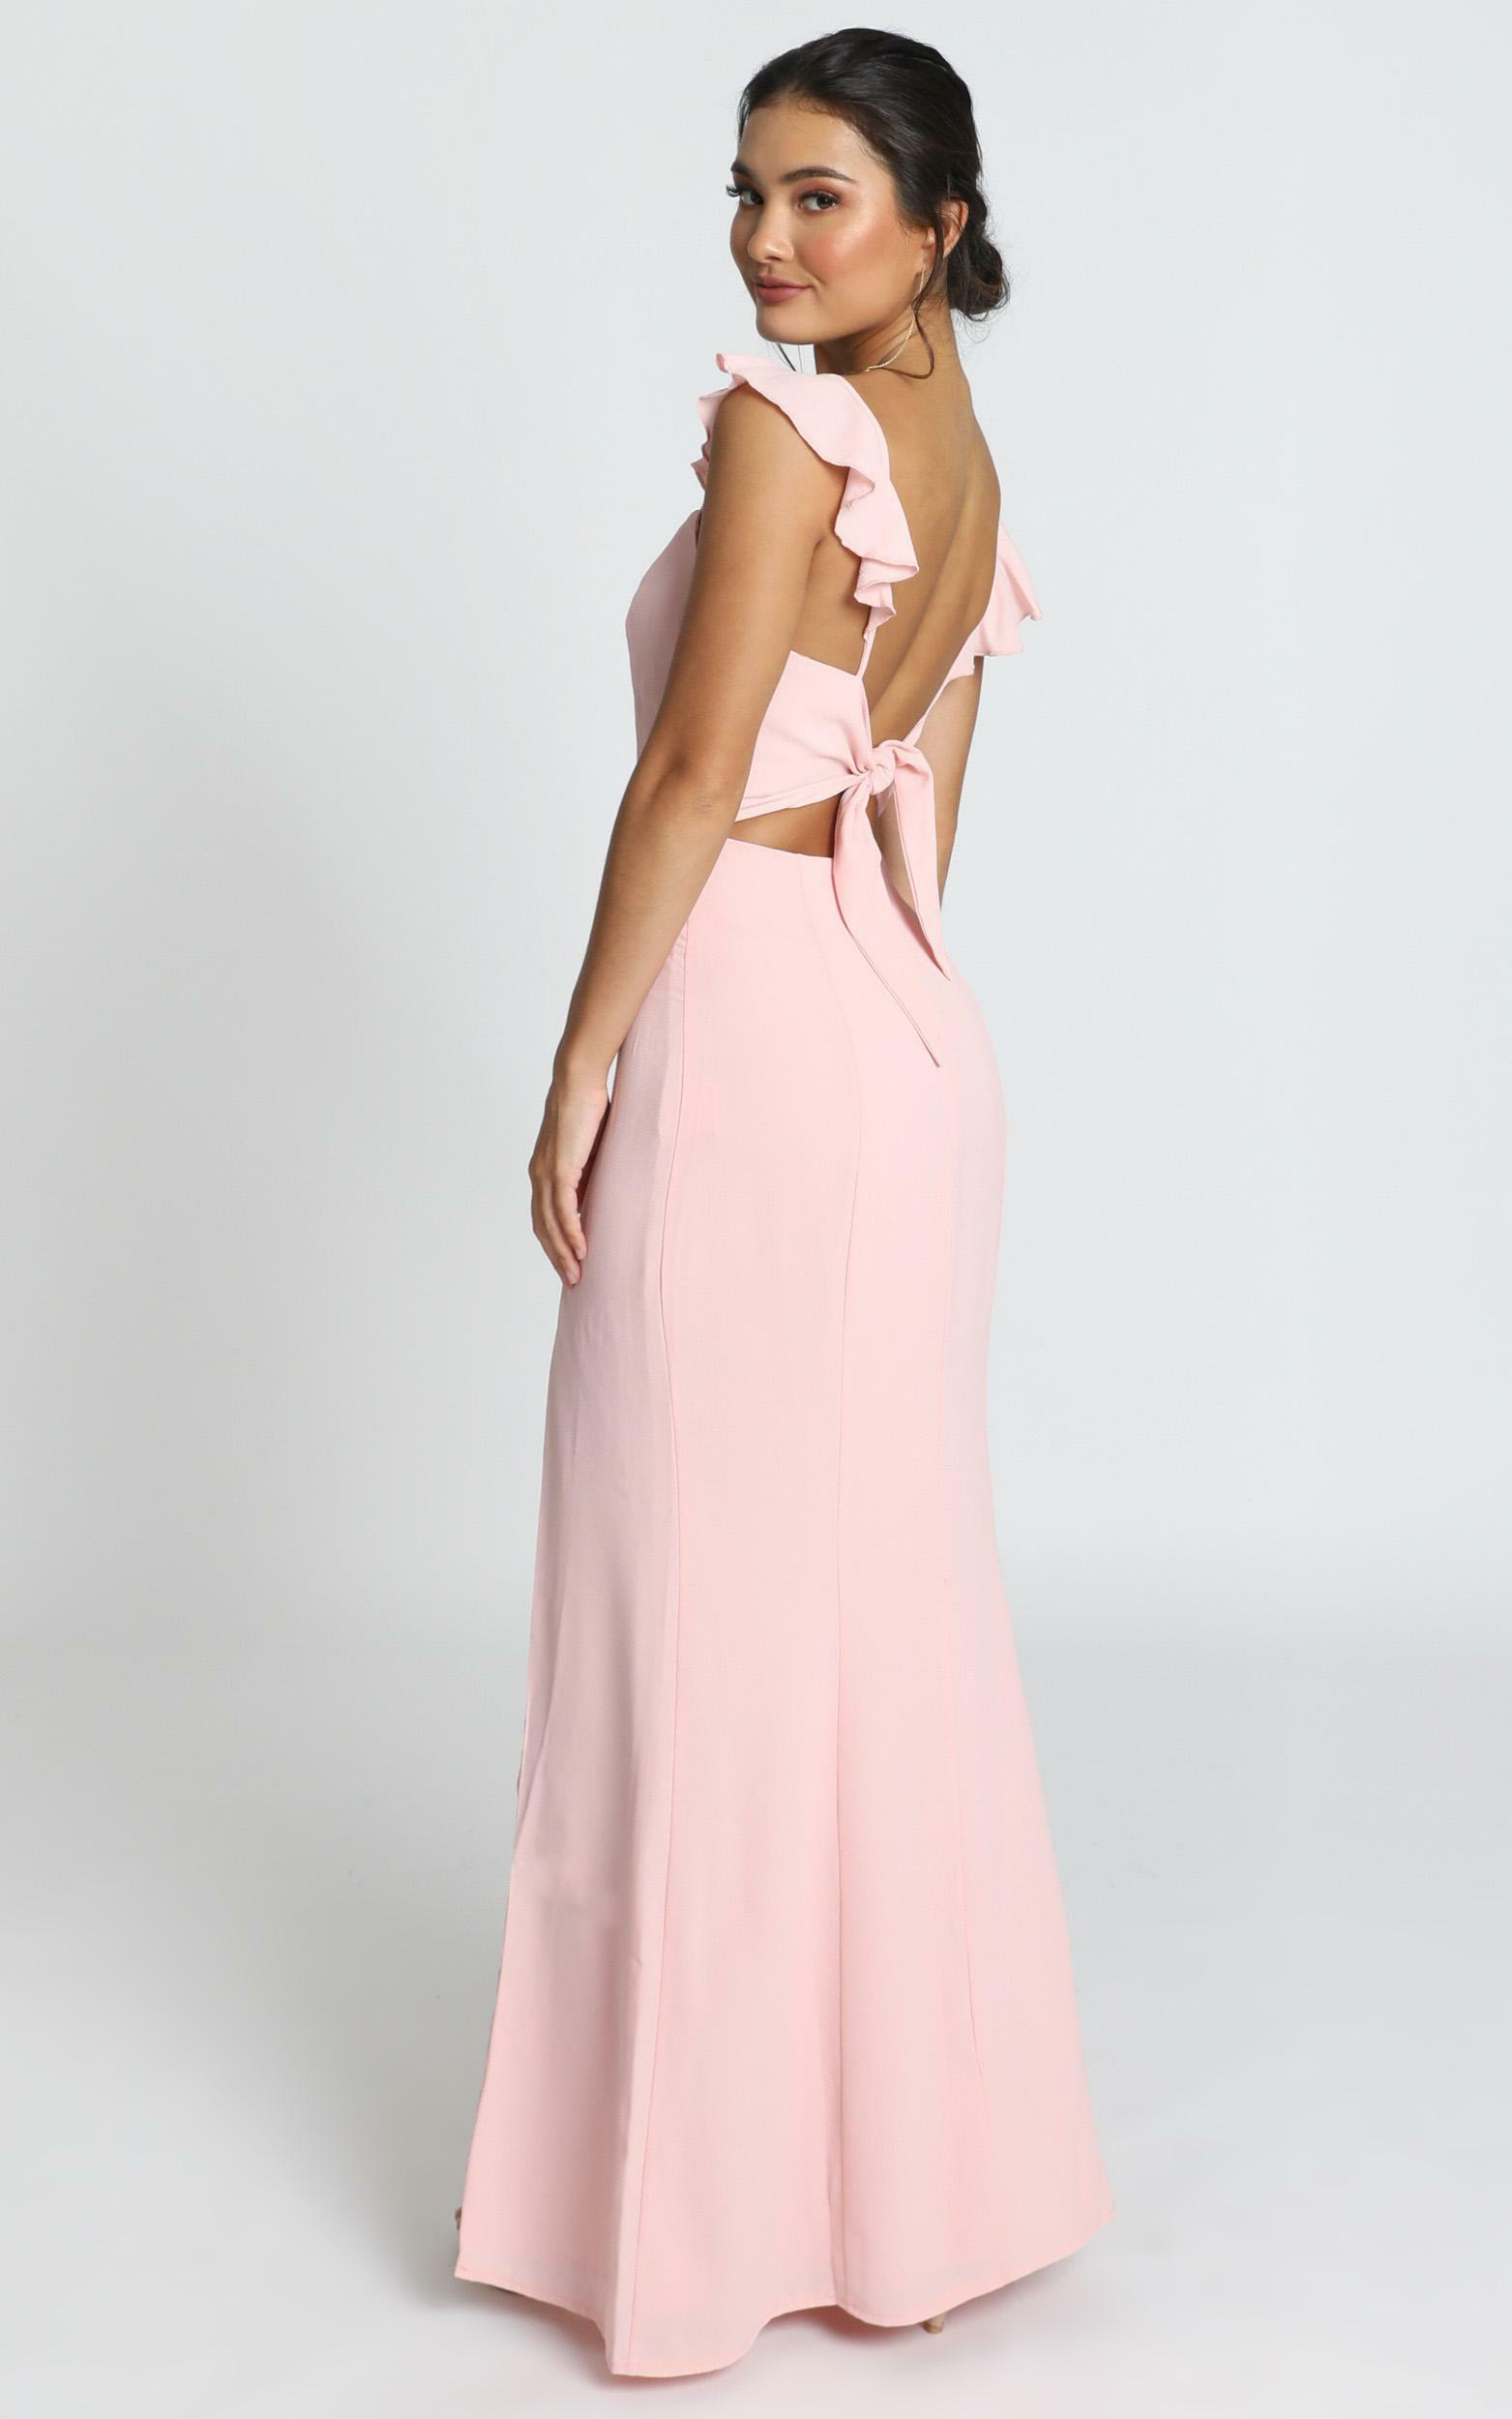 More Than This Ruffle Strap Maxi Dress in Blush - 06, PNK2, hi-res image number null